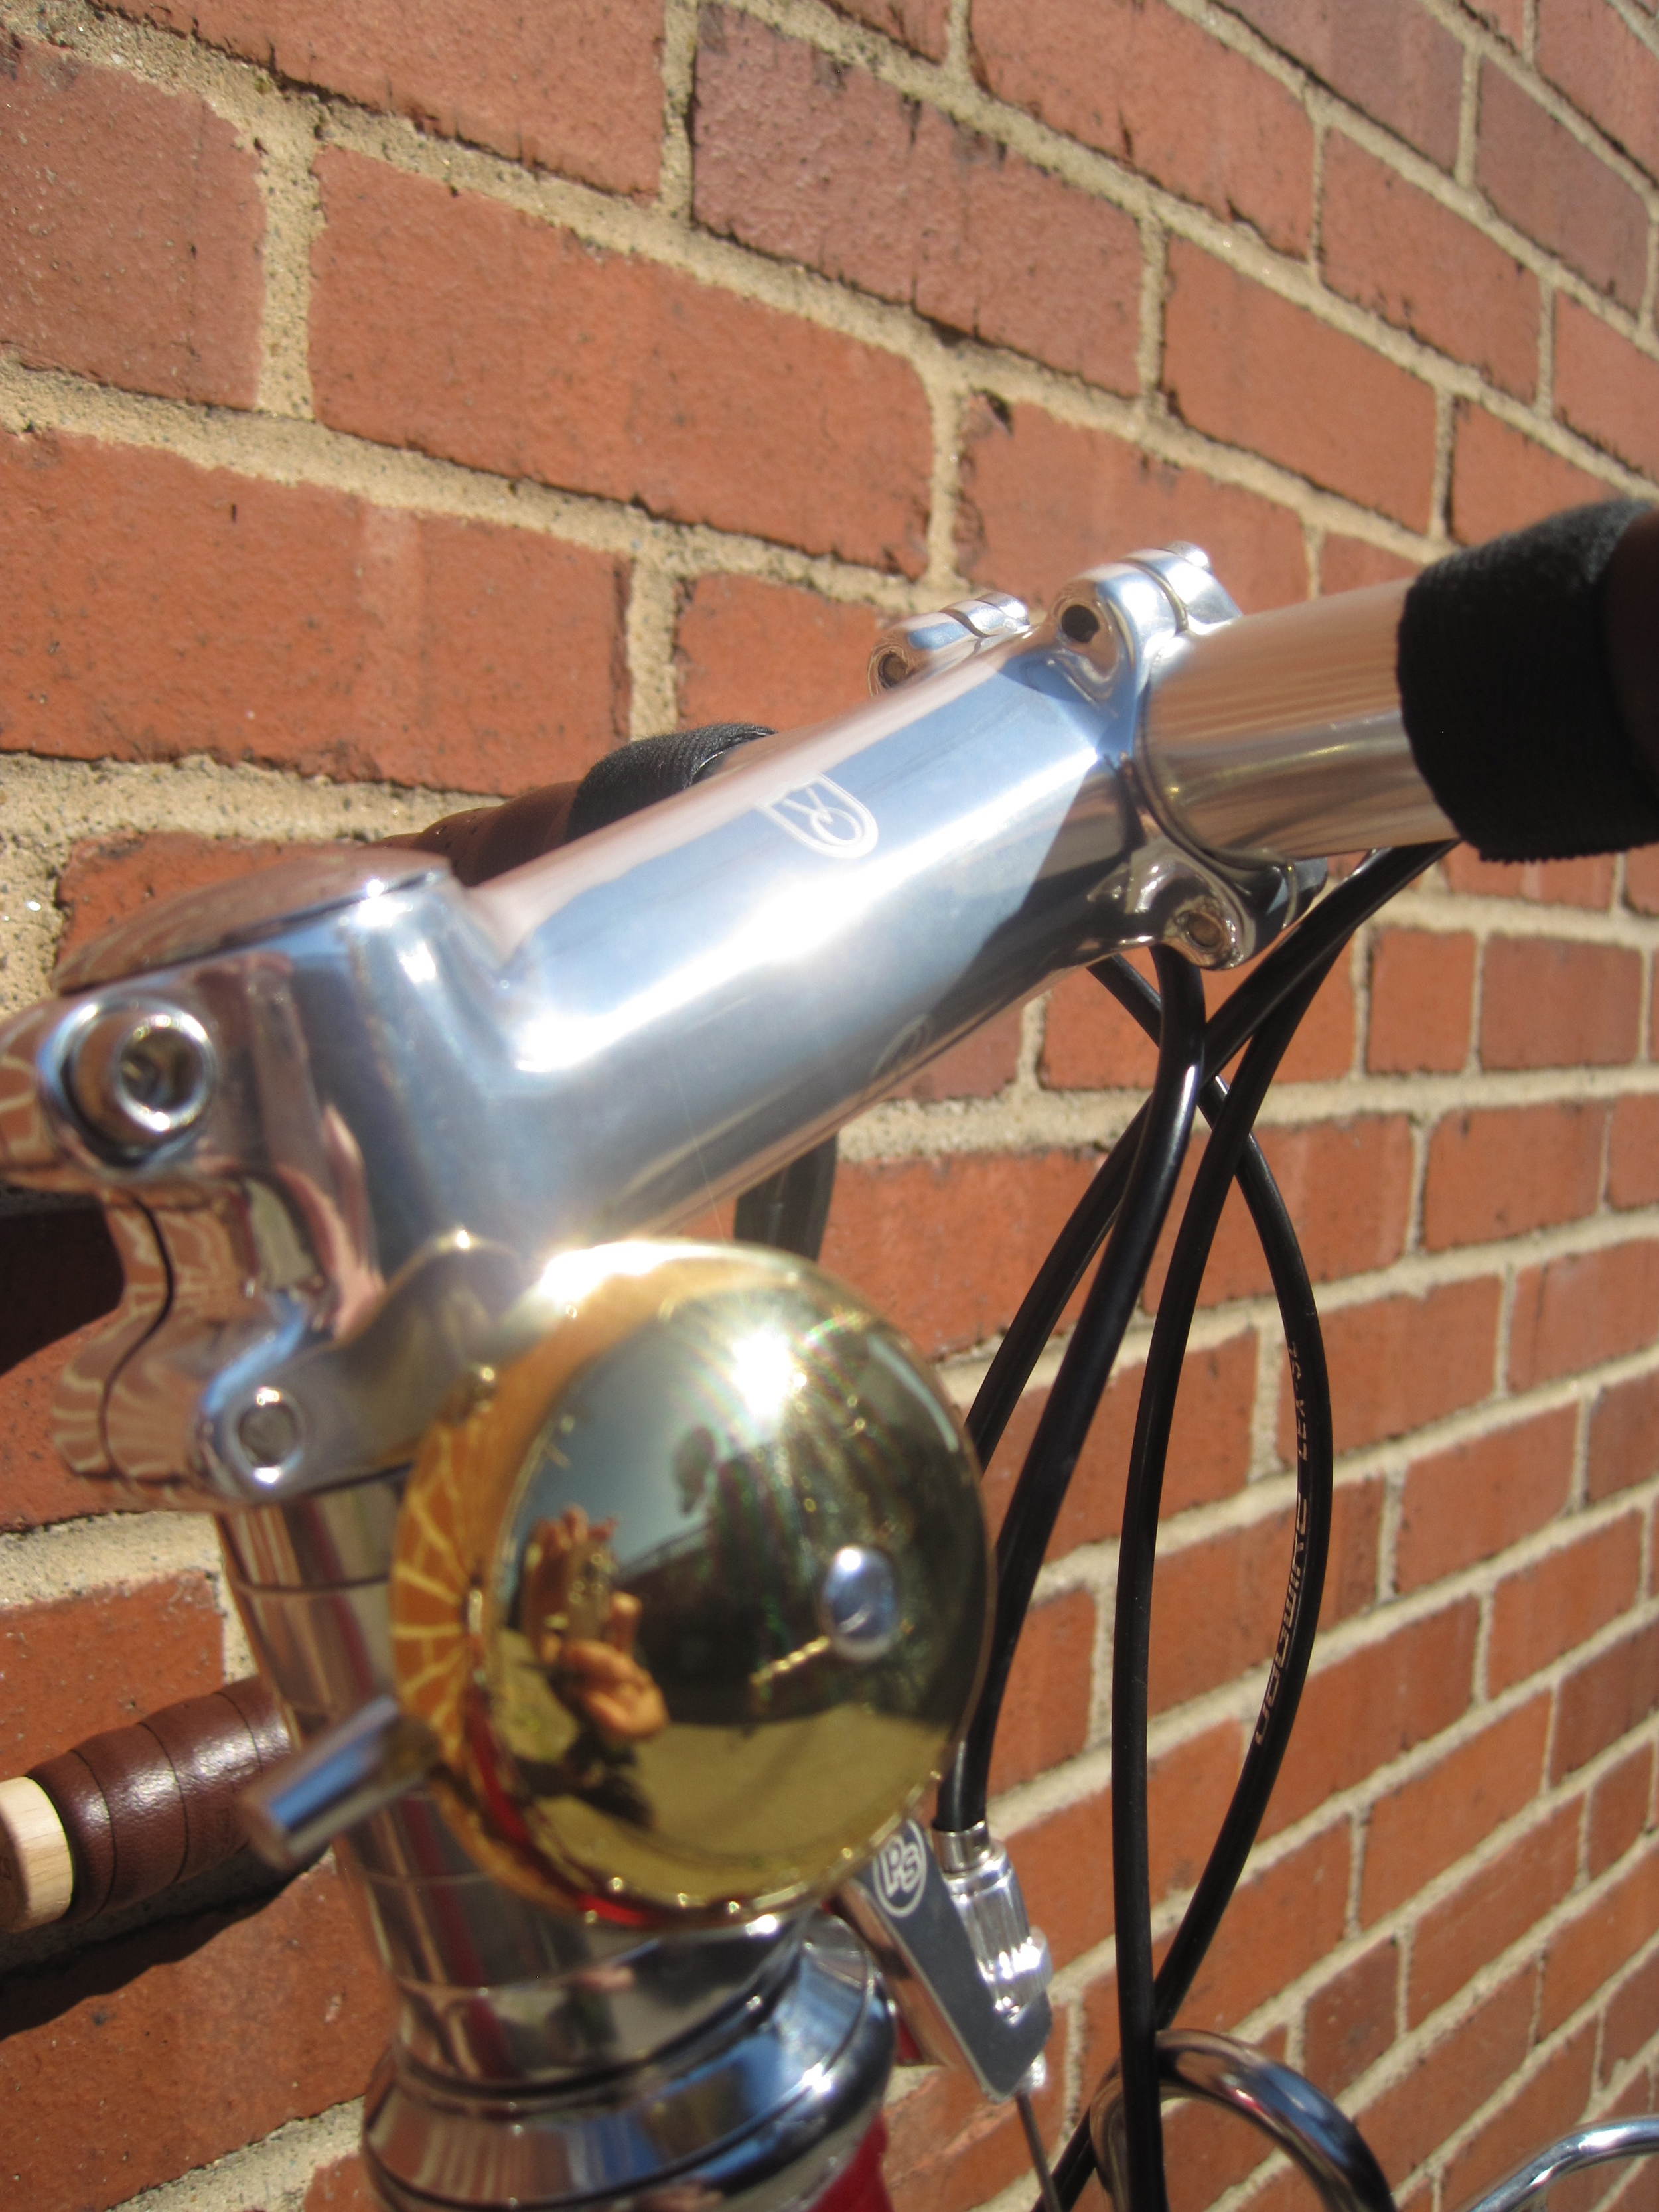 Slick space mounted VO Temple Bell.  This bell retails for $10 and sounds great.  It comes with a bar mount and the stem spacer mount is a $5 add on.